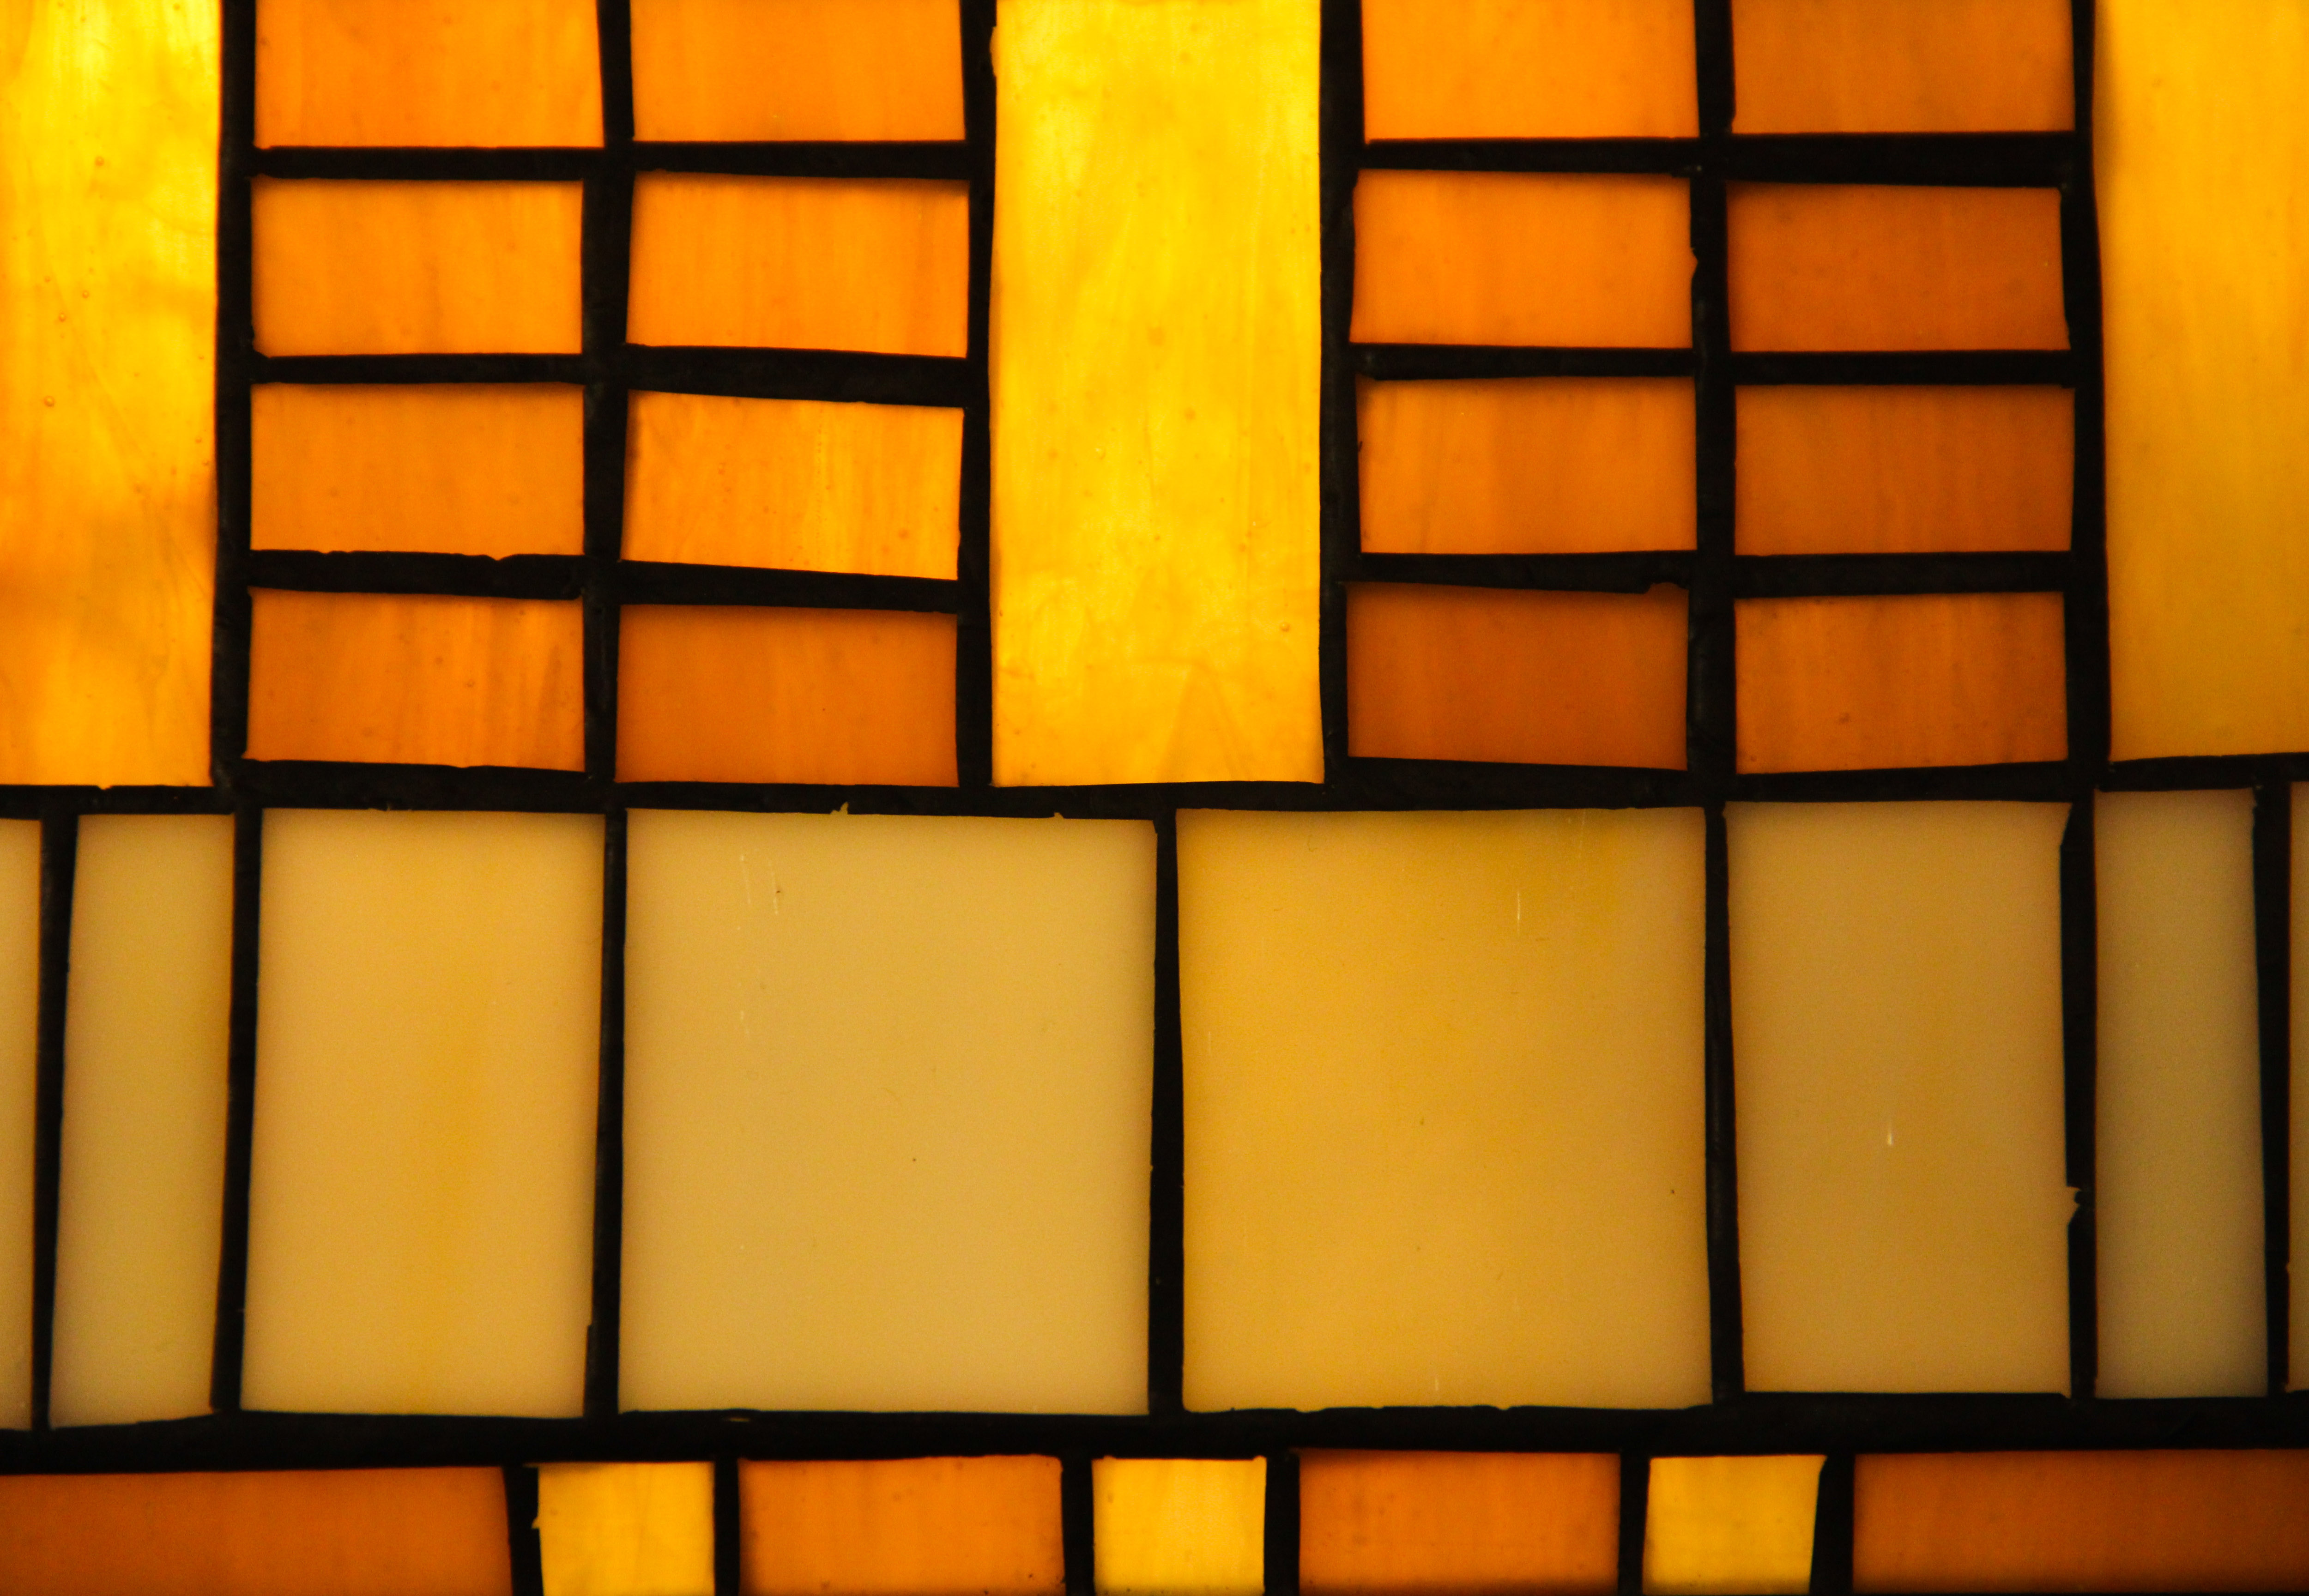 Glass Texture Stained Lamp Window Amber Yellow Glowing Section   TextureX   Free And Premium Textures And High Resolution Graphics